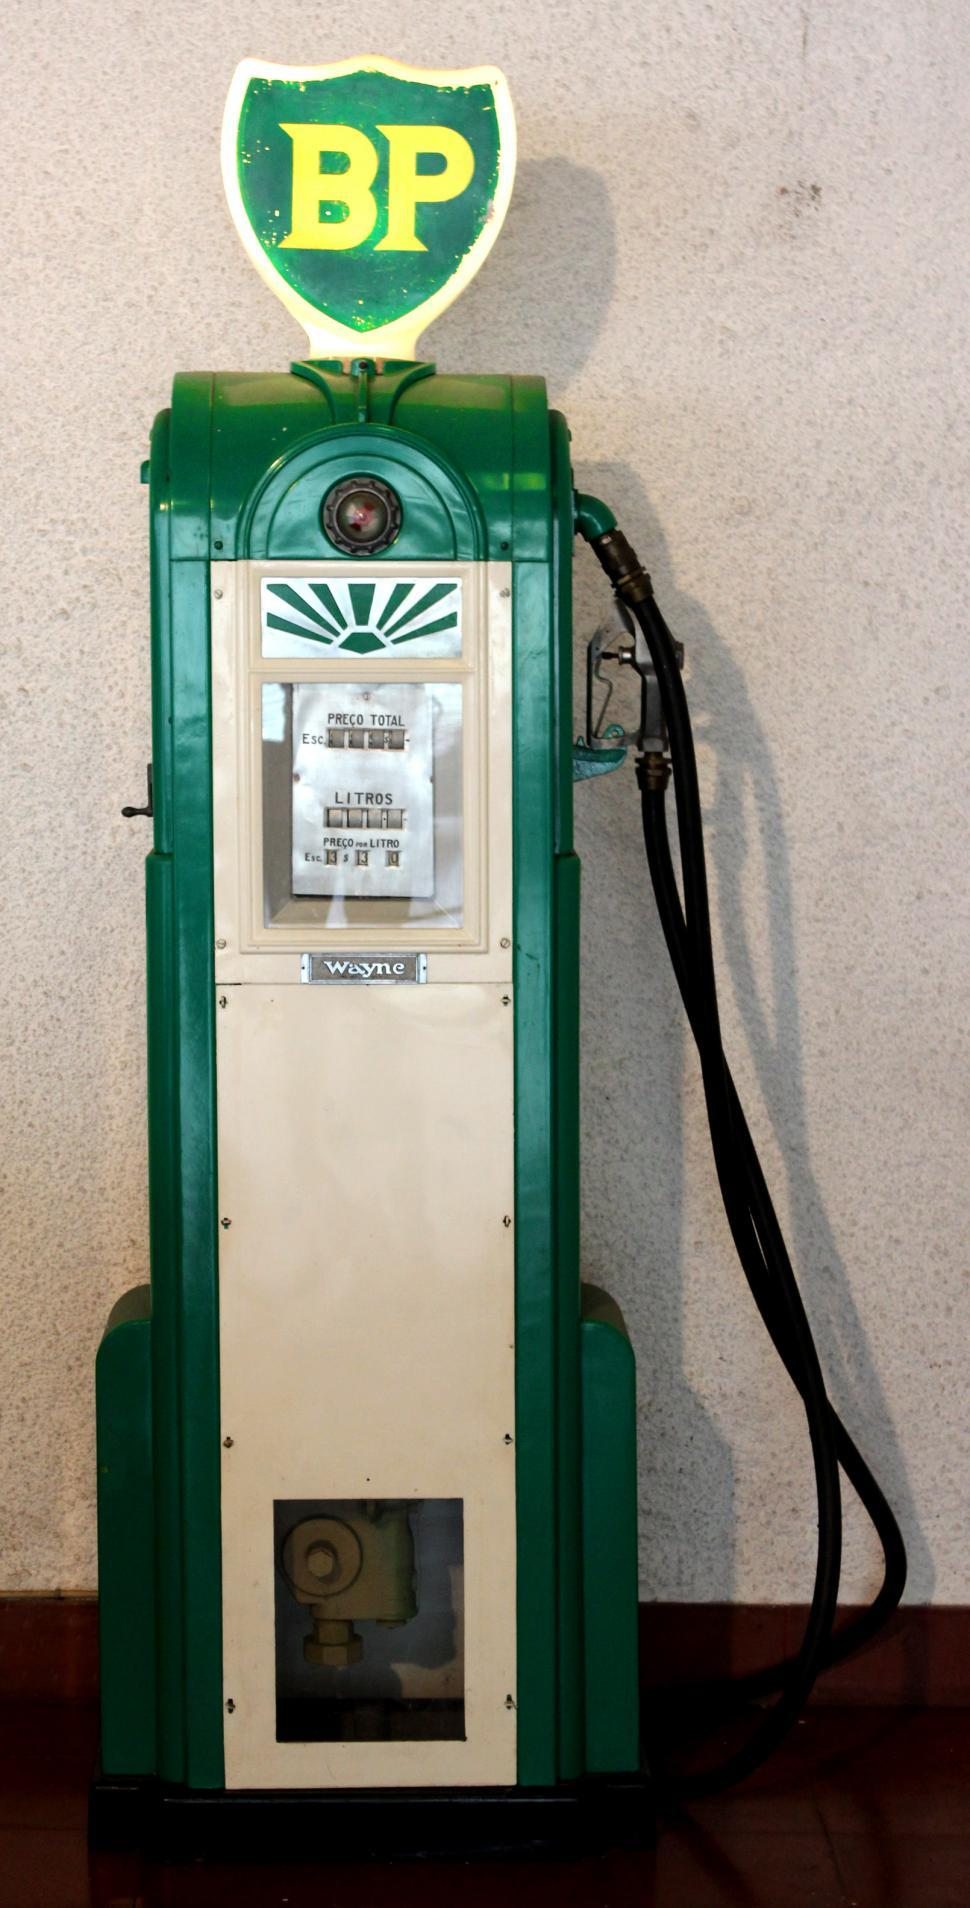 Download Free Stock HD Photo of Classic BP Fuel Pump Online